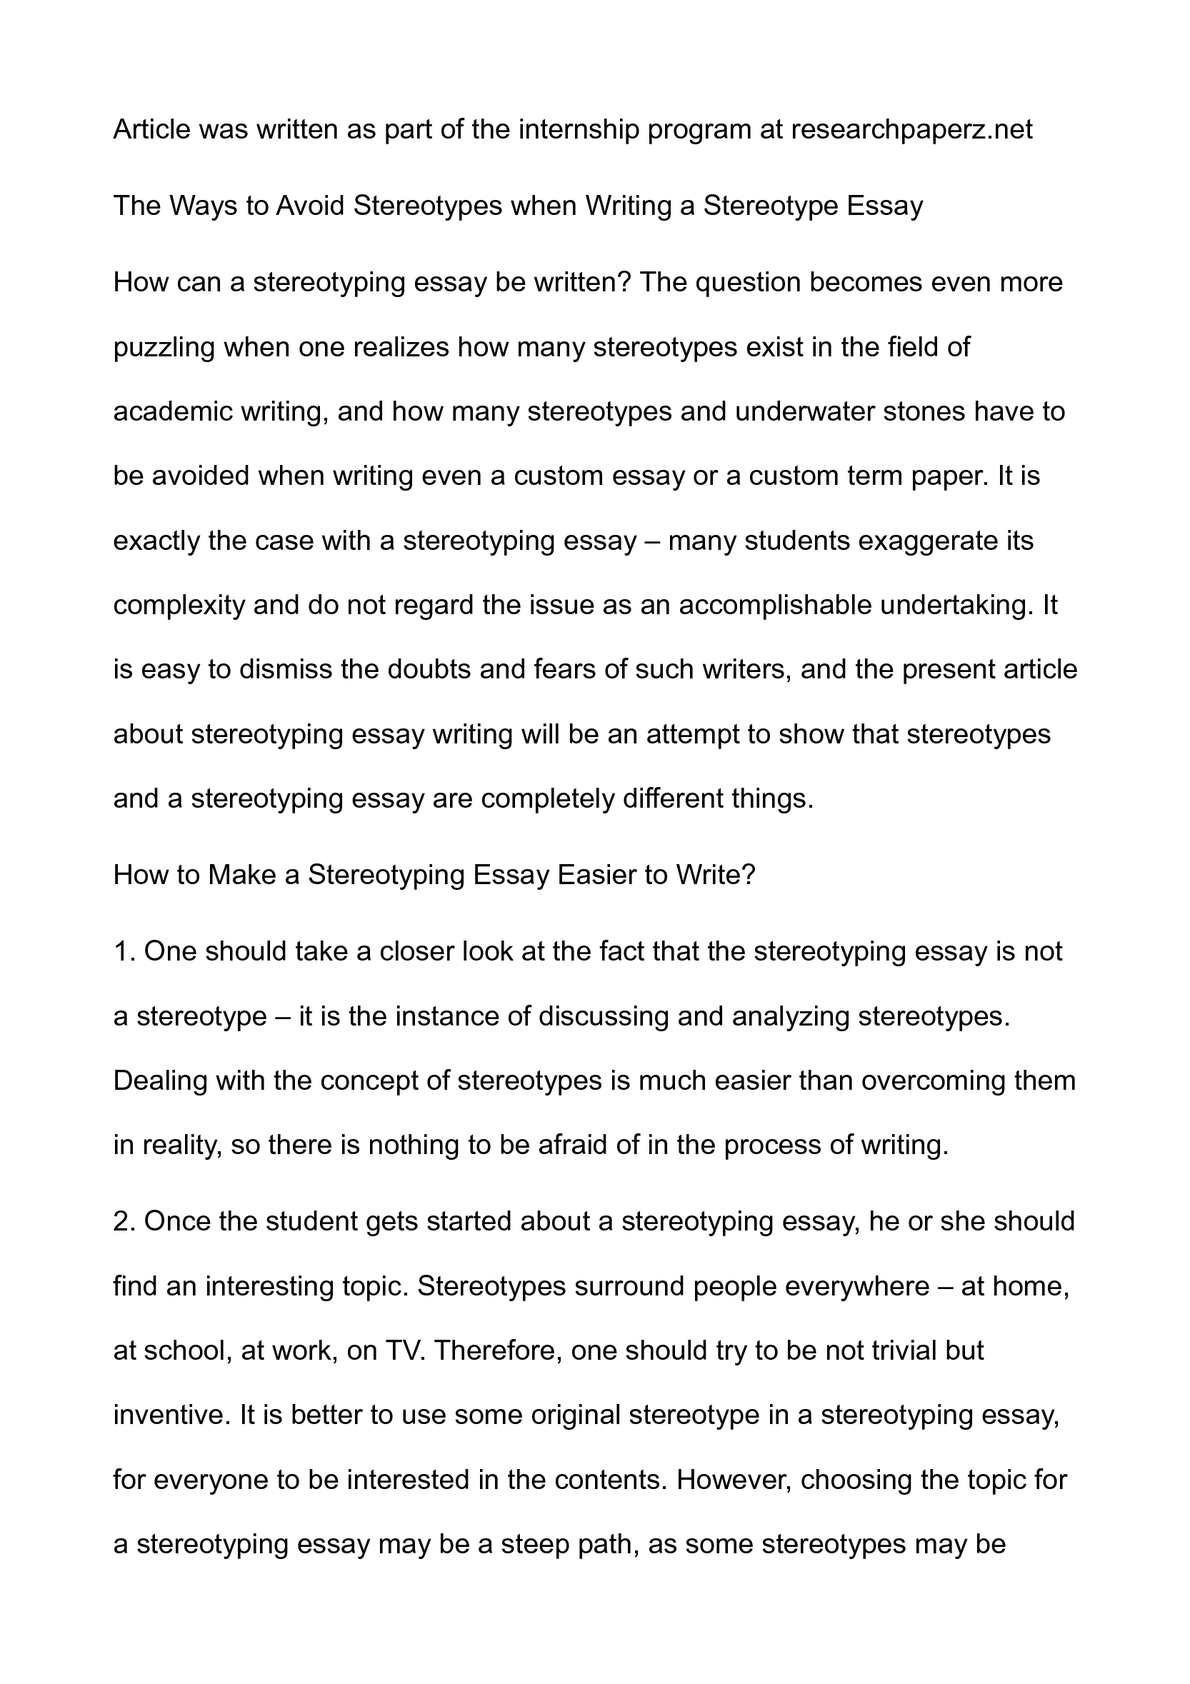 Othello Essay Thesis  Locavore Synthesis Essay also Compare And Contrast Essay Sample Paper Calamo  The Ways To Avoid Stereotypes When Writing A Stereotype Essay Thesis Statement For Process Essay